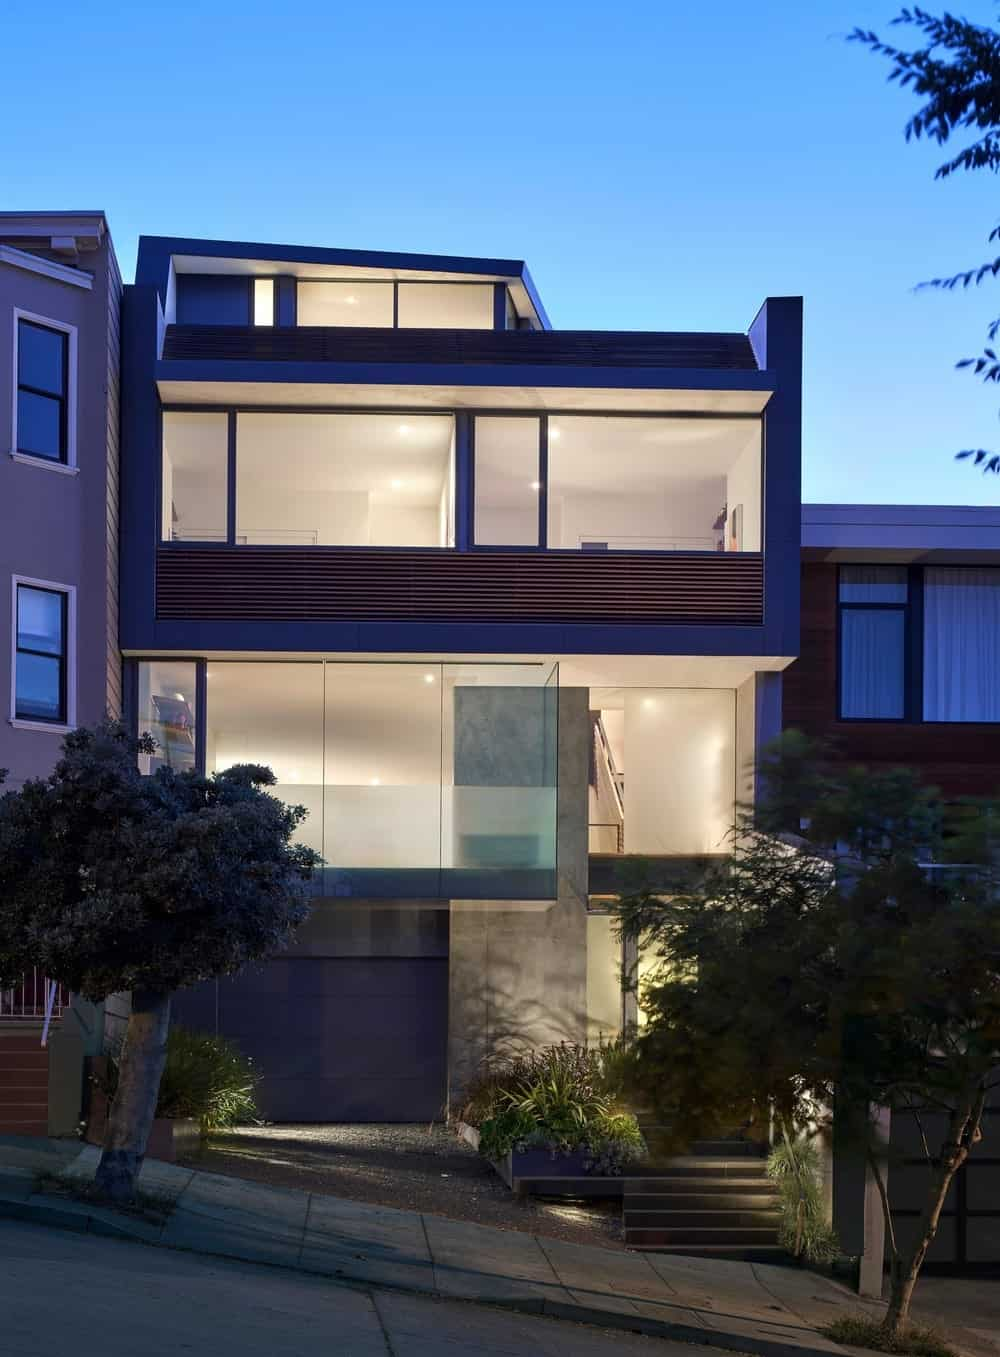 Night view of facade of the House on Hillside designed by Terry & Terry Architecture.